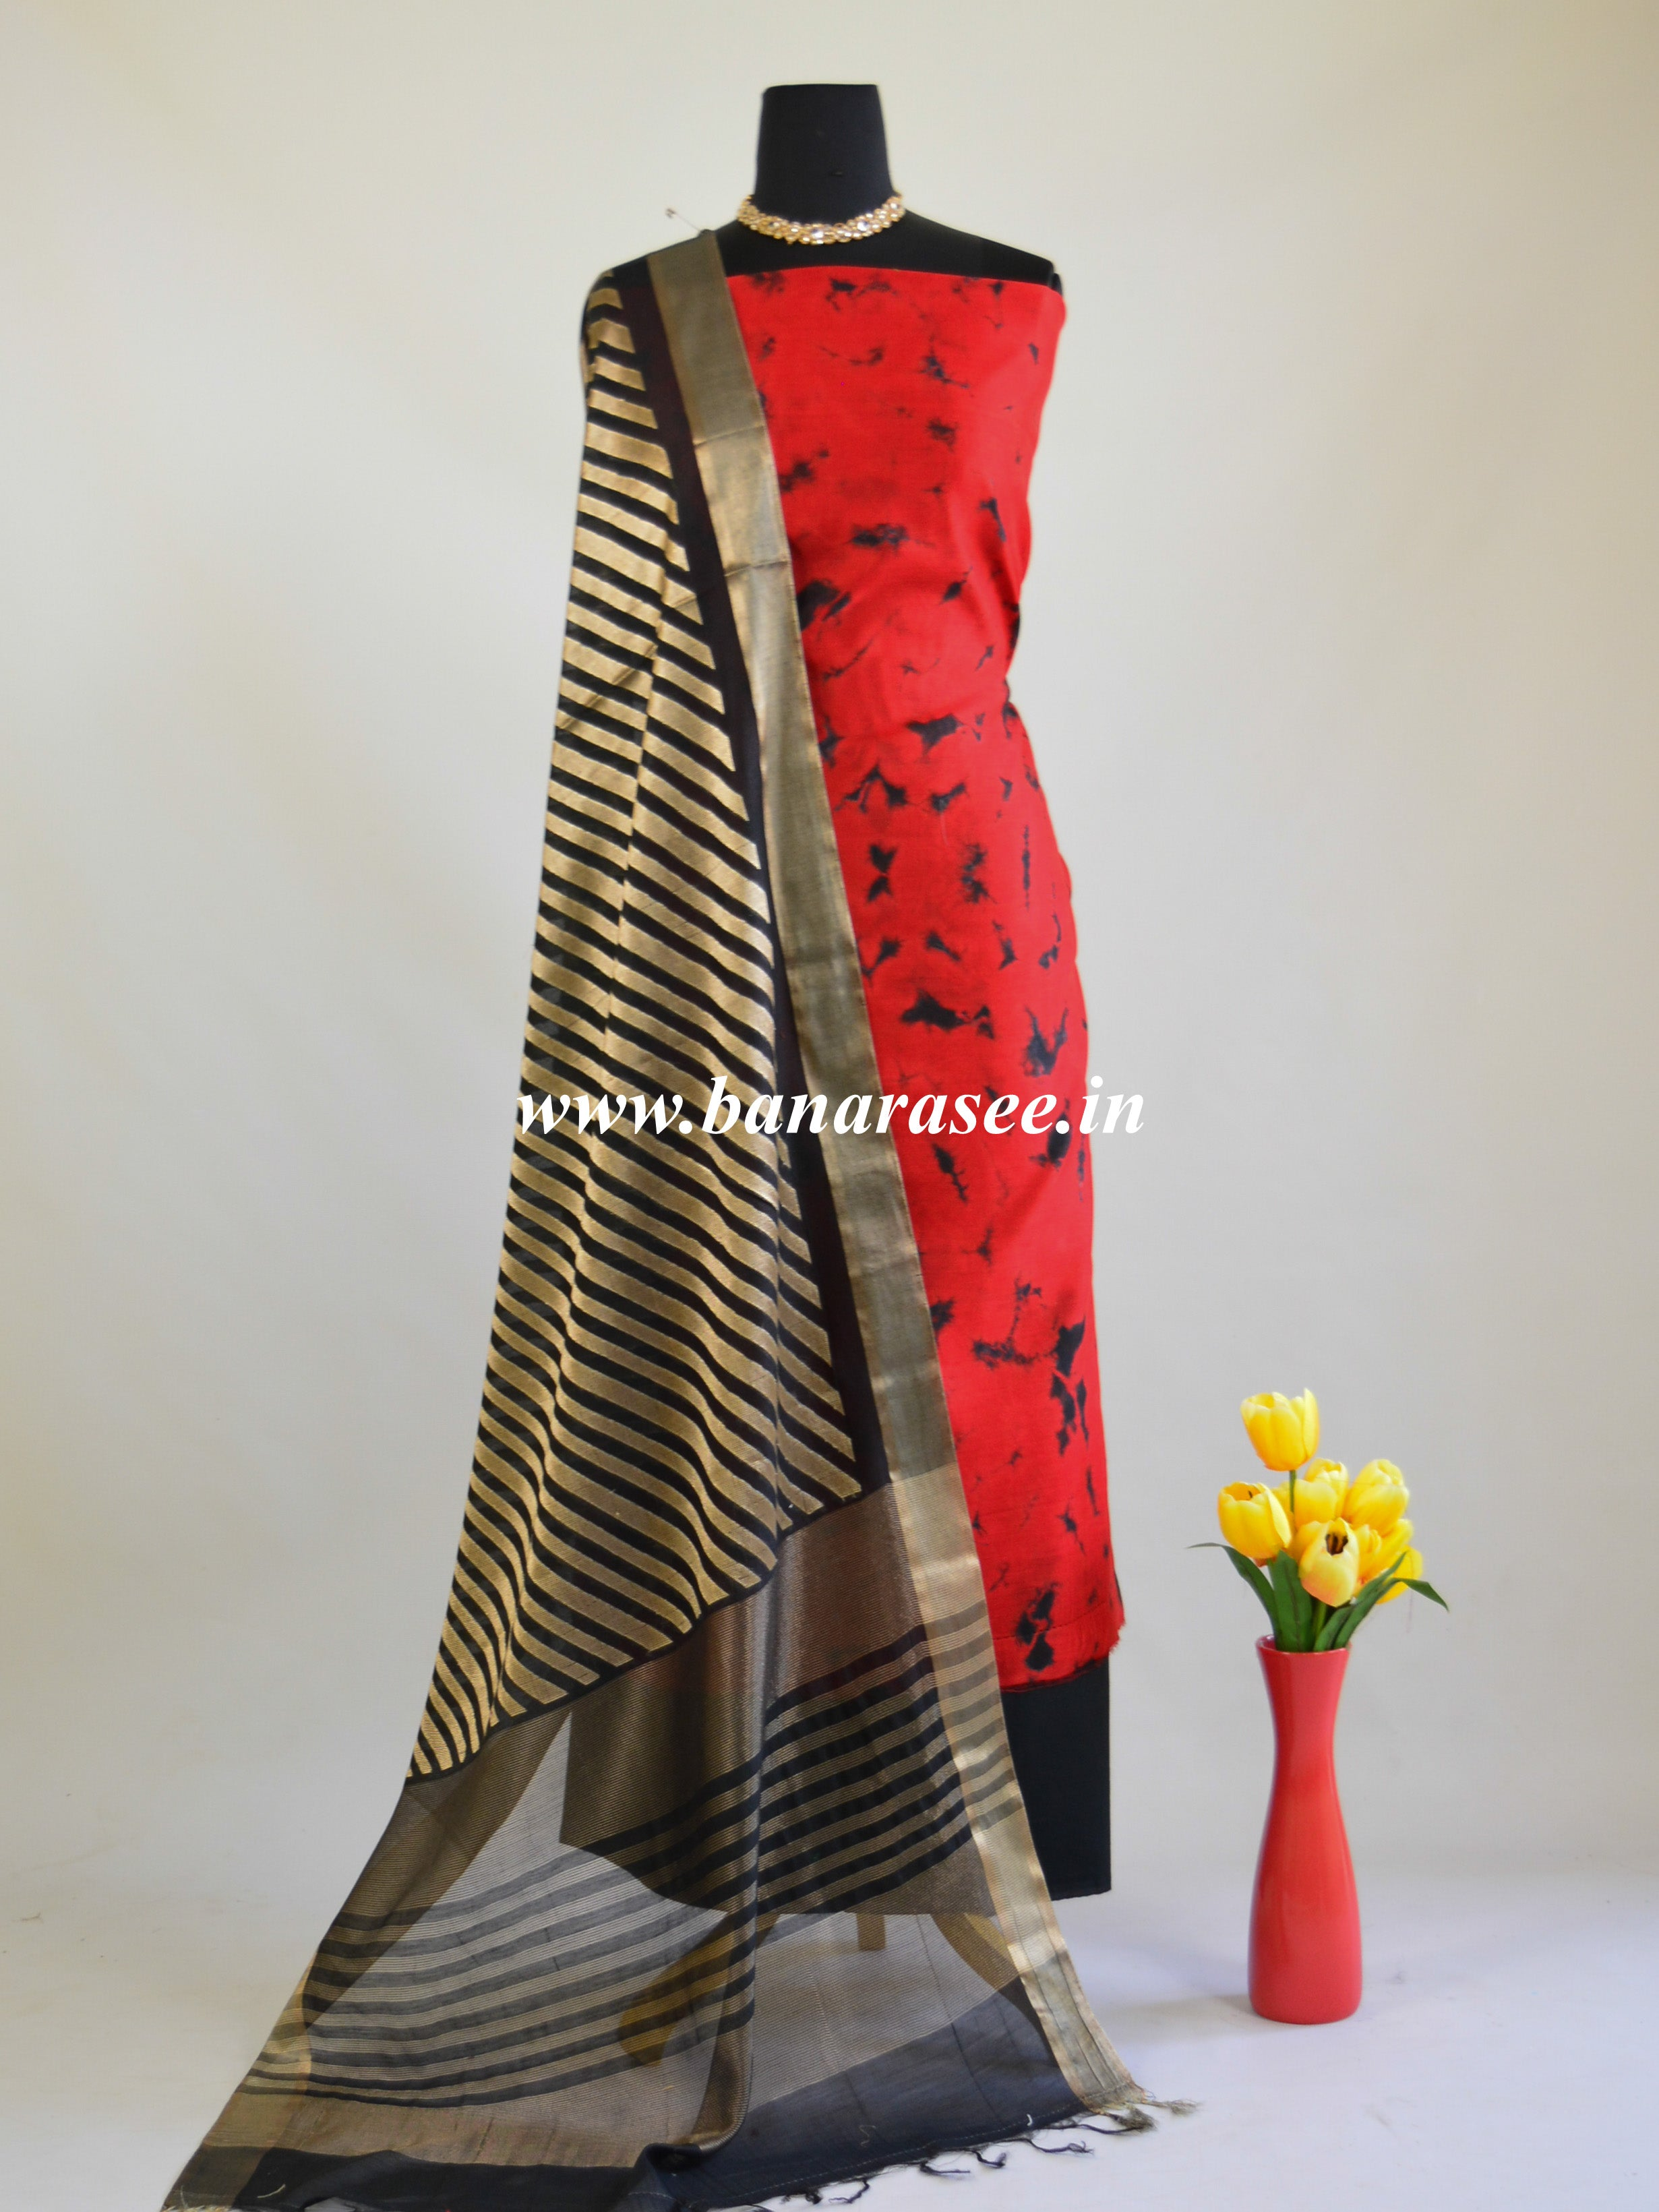 Banarasee Shibori Dyed Chanderi Salwar Kameez Fabric With Contrast Zari Dupatta-Red & Black